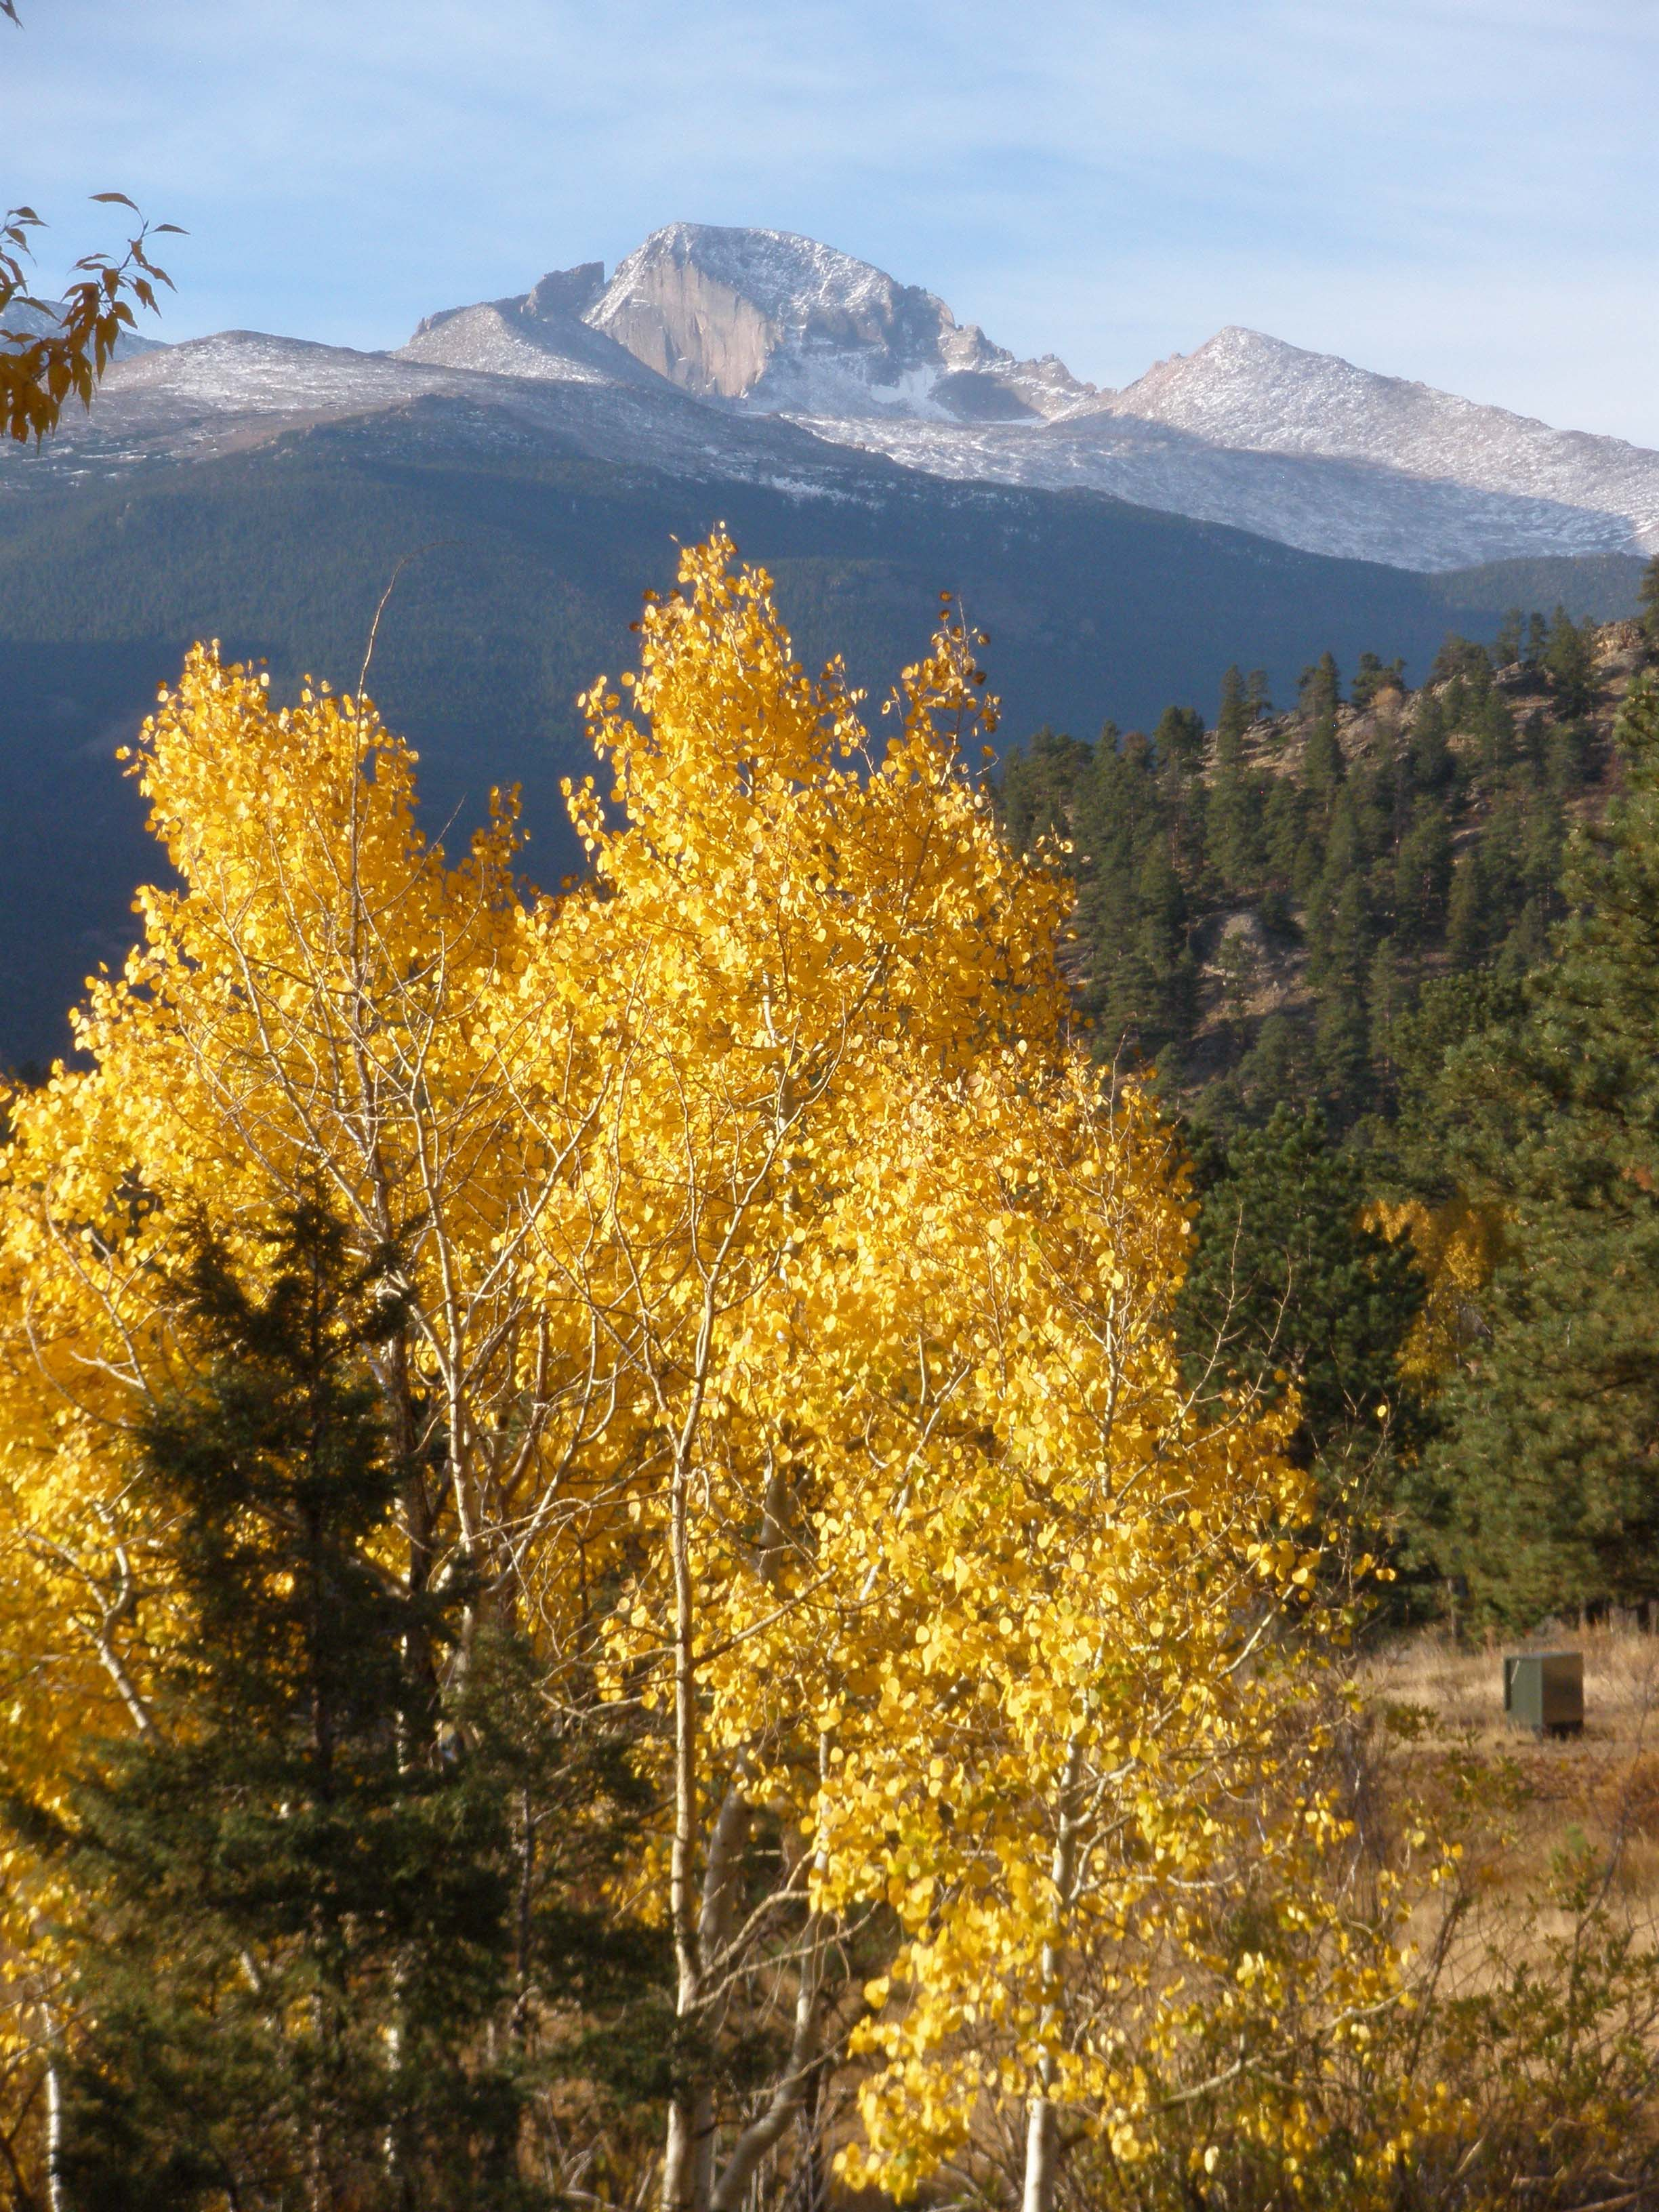 Longs Peak in distance with fall colors.